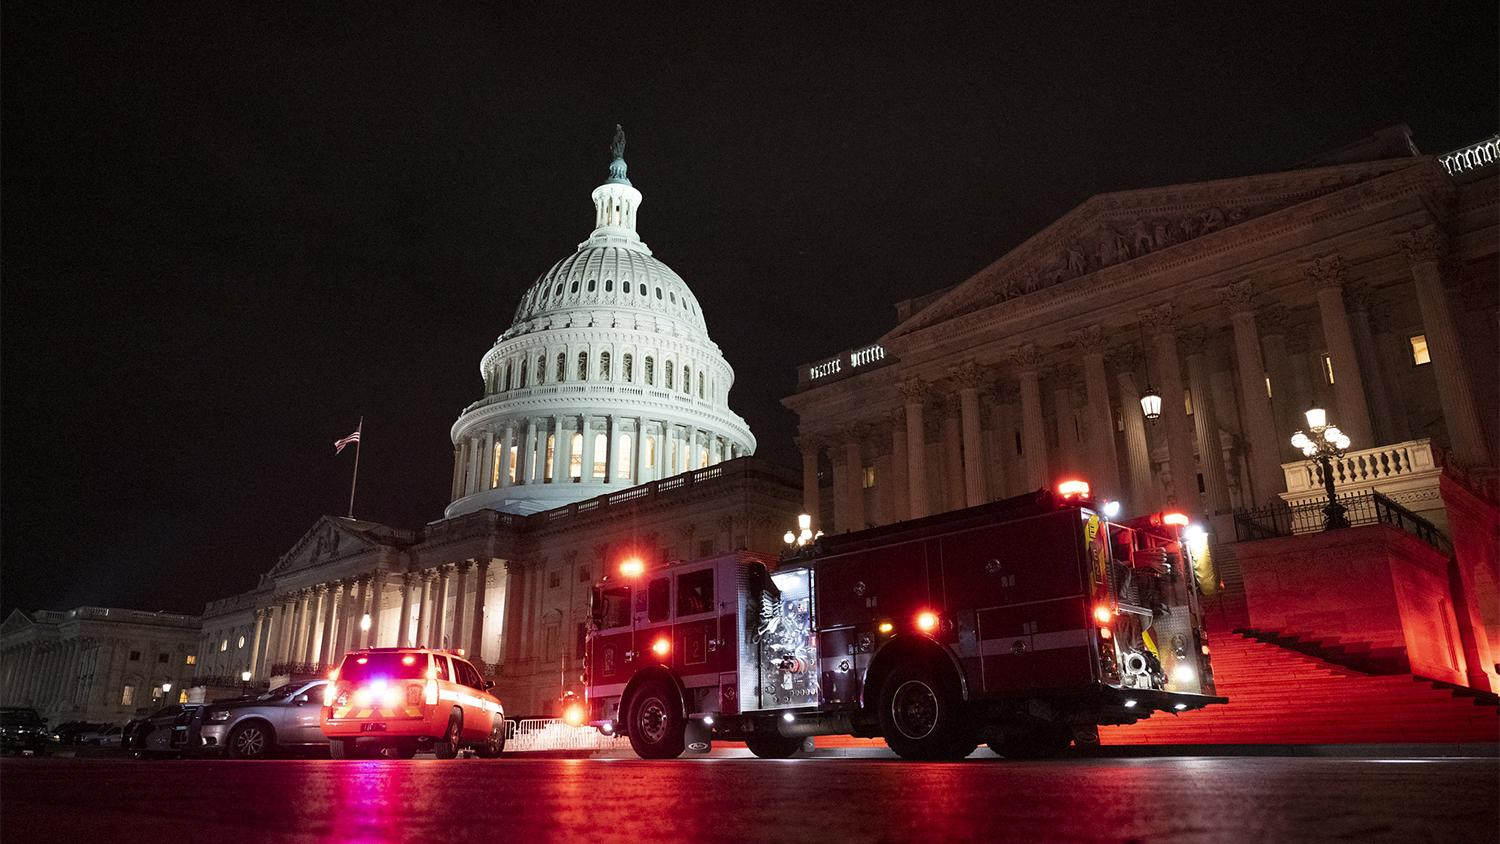 Emergency personnel outside the U.S. Capitol building